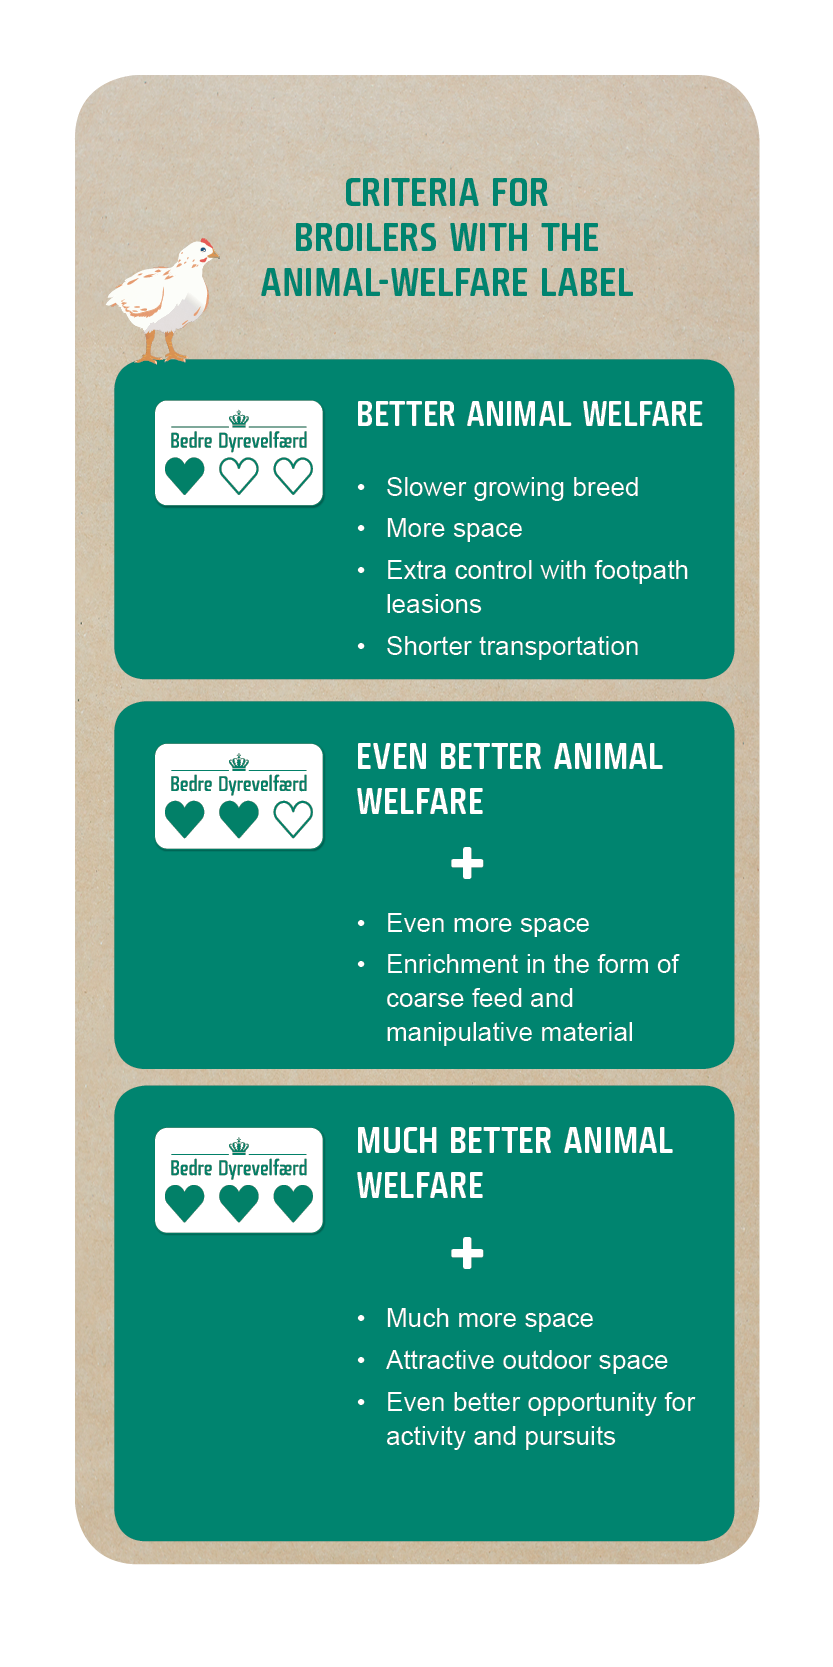 Picture of the animal welfare label criterie for broilers